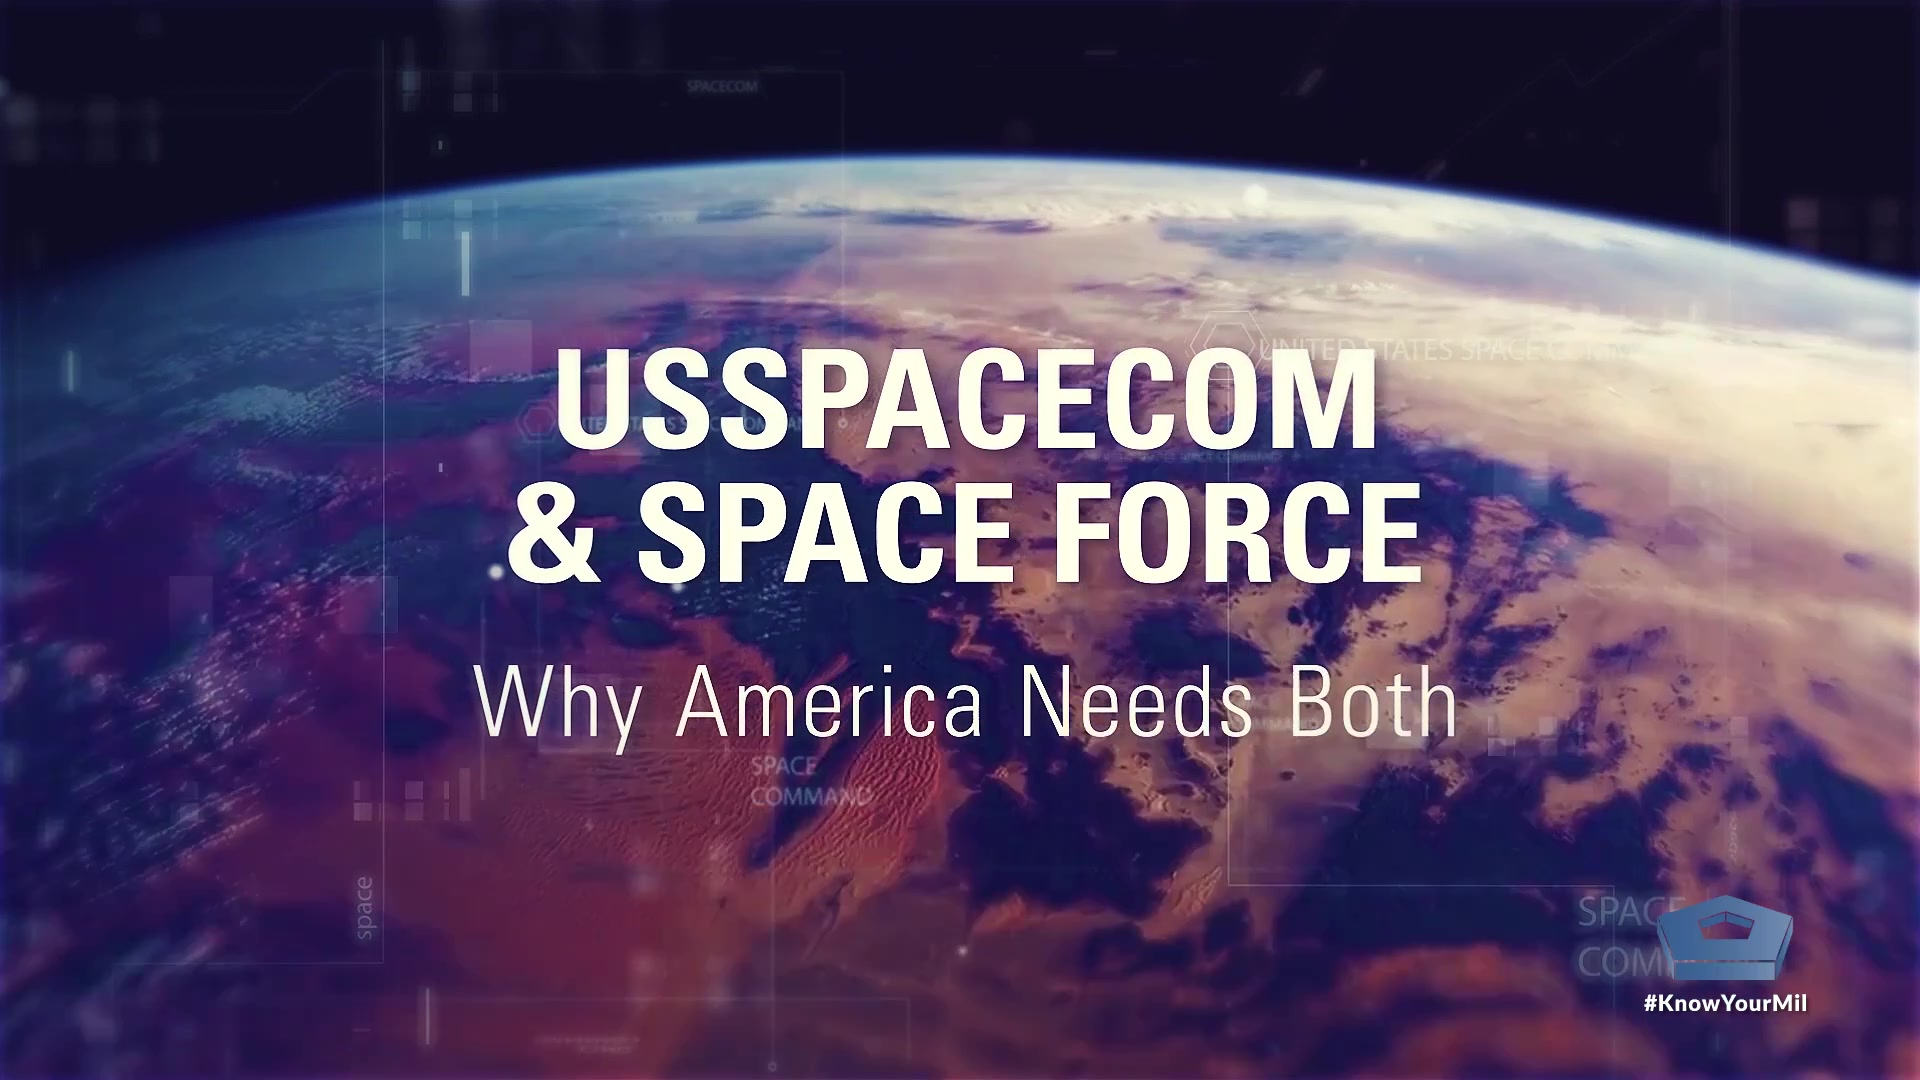 US Space Command was activated 29 AUG 2019, becoming the nation's 11th combatant command. In addition to discussing the command's mission, this video highlights the foundational differences between a military branch and a combatant command. The establishment of US Space Command aims to enhance the nation's space superiority and protect and defend US interests in space.